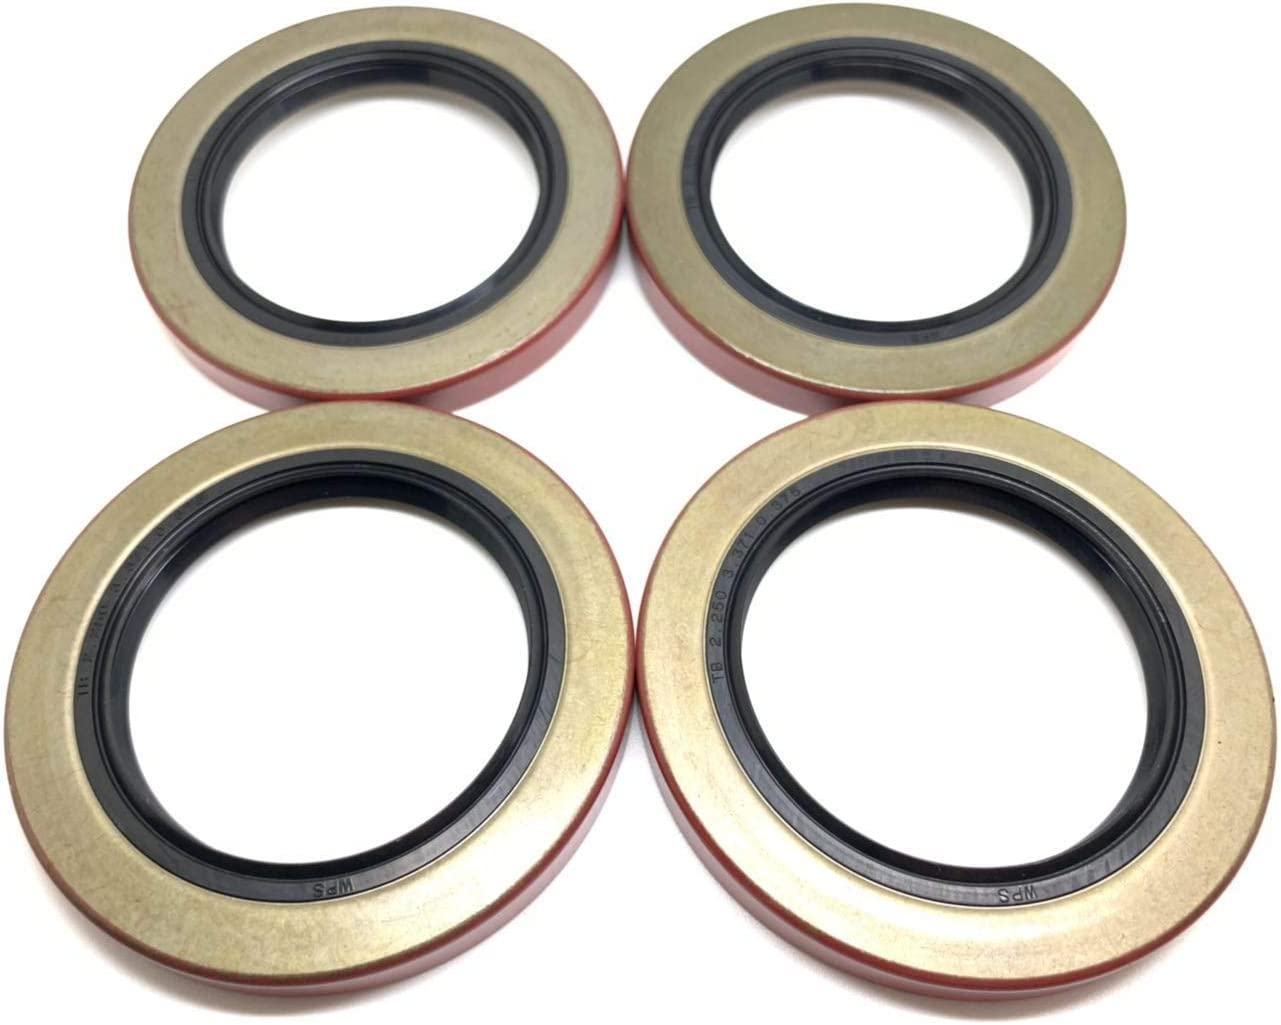 for 5200-7000# Trailer Axles Pack of 4 WPS Trailer Hub Wheel Grease Seal 10-36 2.250 I.D 22333TB